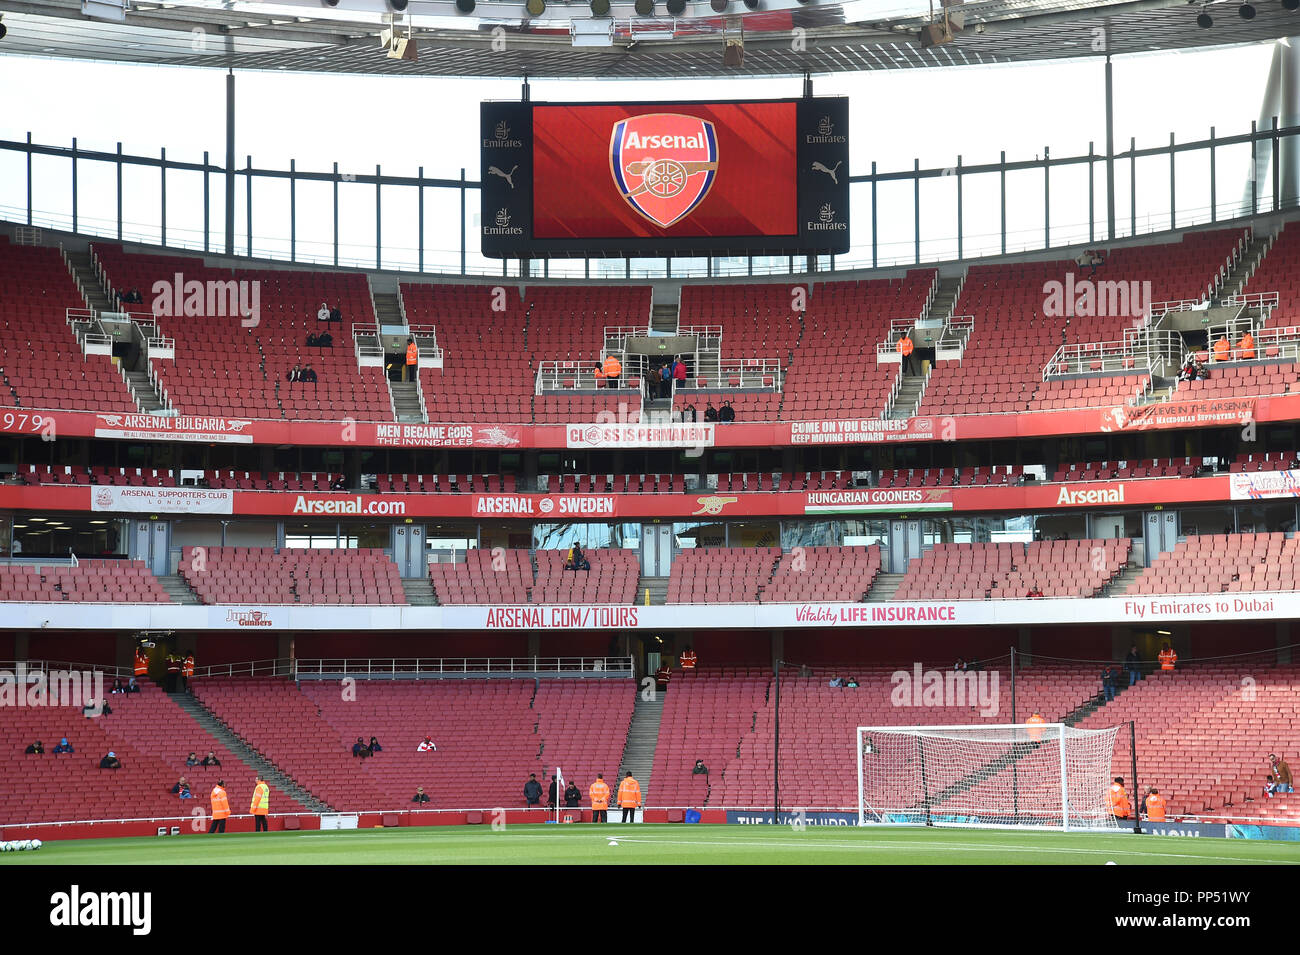 London, UK. 23rd Sept 2018. General view of Premier League match between Arsenal and Everton at Emirates Stadium on September 23rd 2018 in London, England. (Photo by Zed Jameson/phcimages.com) Credit: PHC Images/Alamy Live News Stock Photo